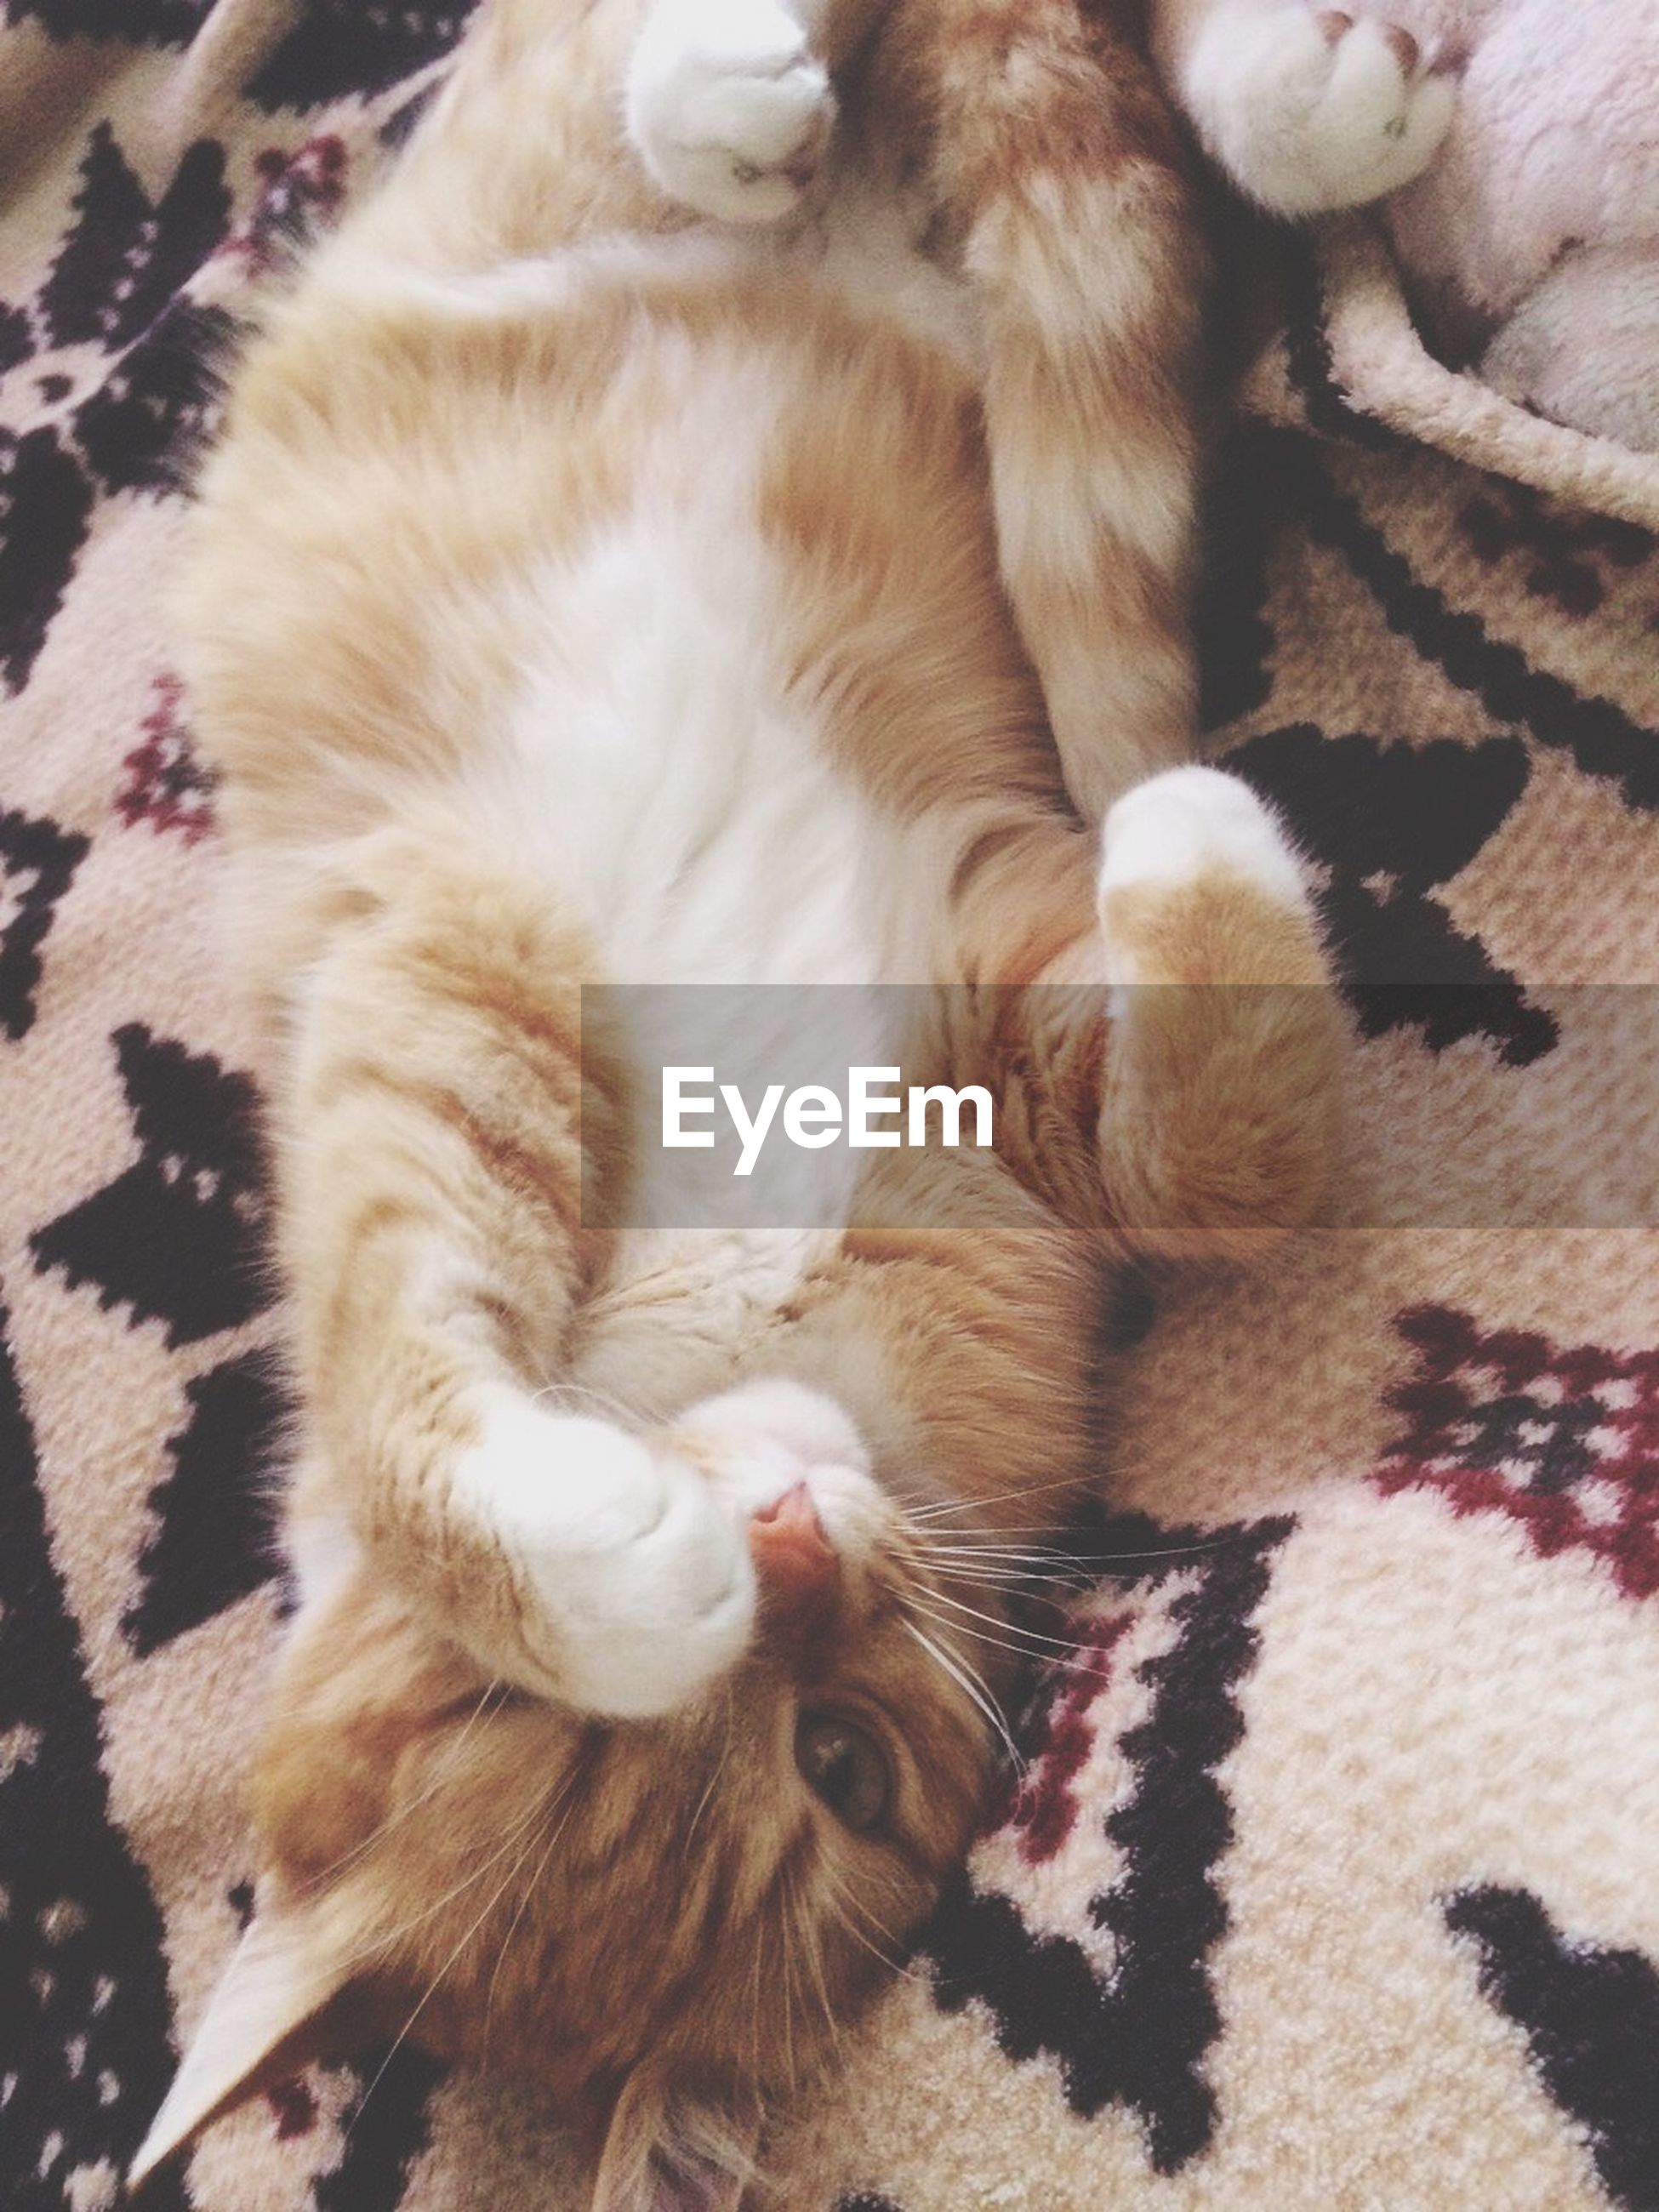 animal themes, domestic animals, pets, mammal, indoors, one animal, relaxation, domestic cat, sleeping, cat, resting, high angle view, feline, lying down, two animals, whisker, close-up, home interior, young animal, eyes closed